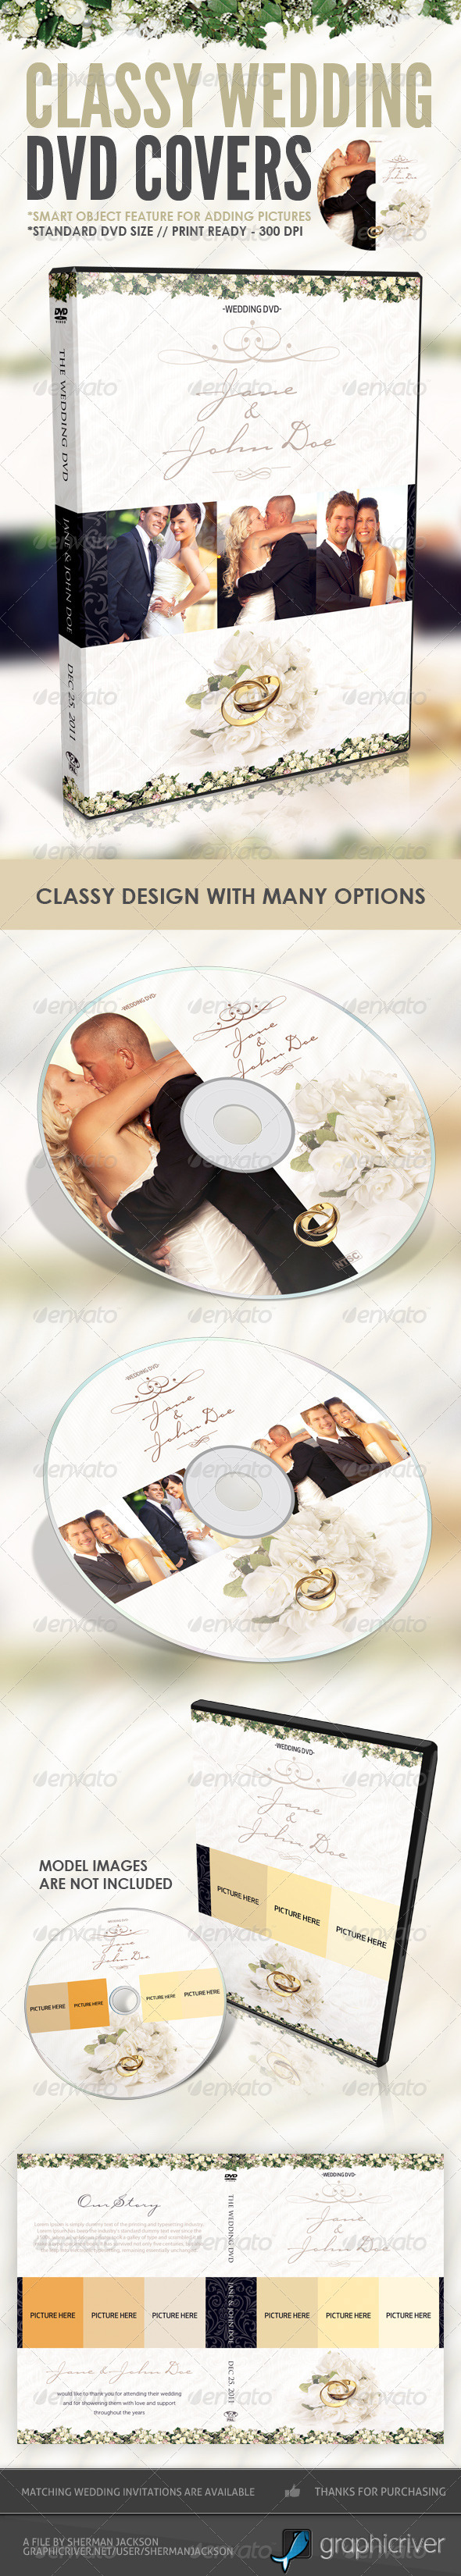 Classy Wedding DVD Covers